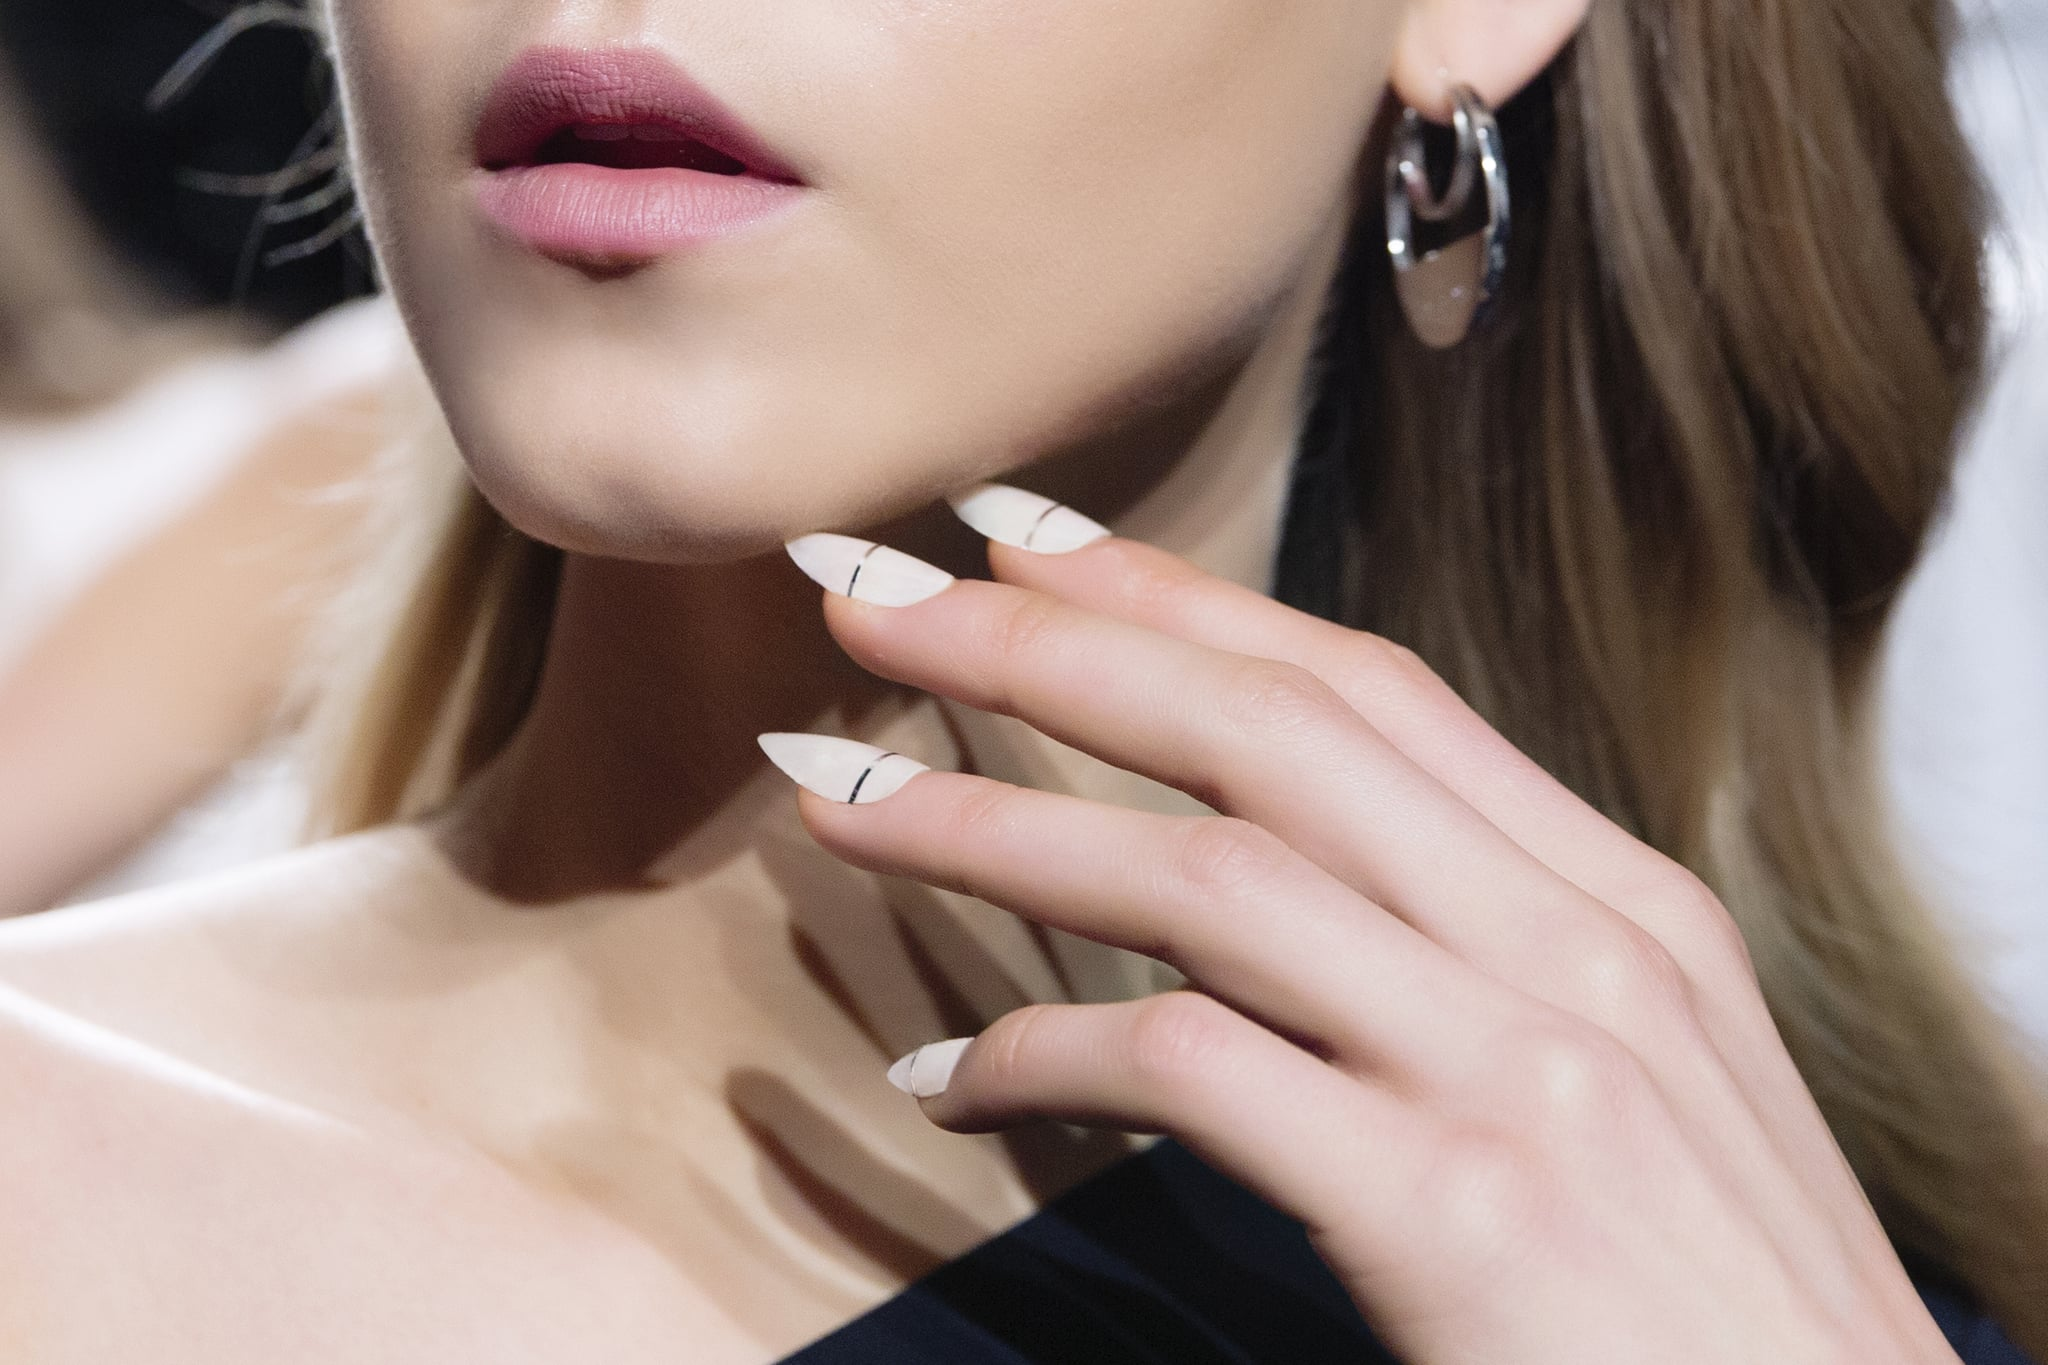 How to Copy Christian Louboutin Nail Art | POPSUGAR Beauty Middle East